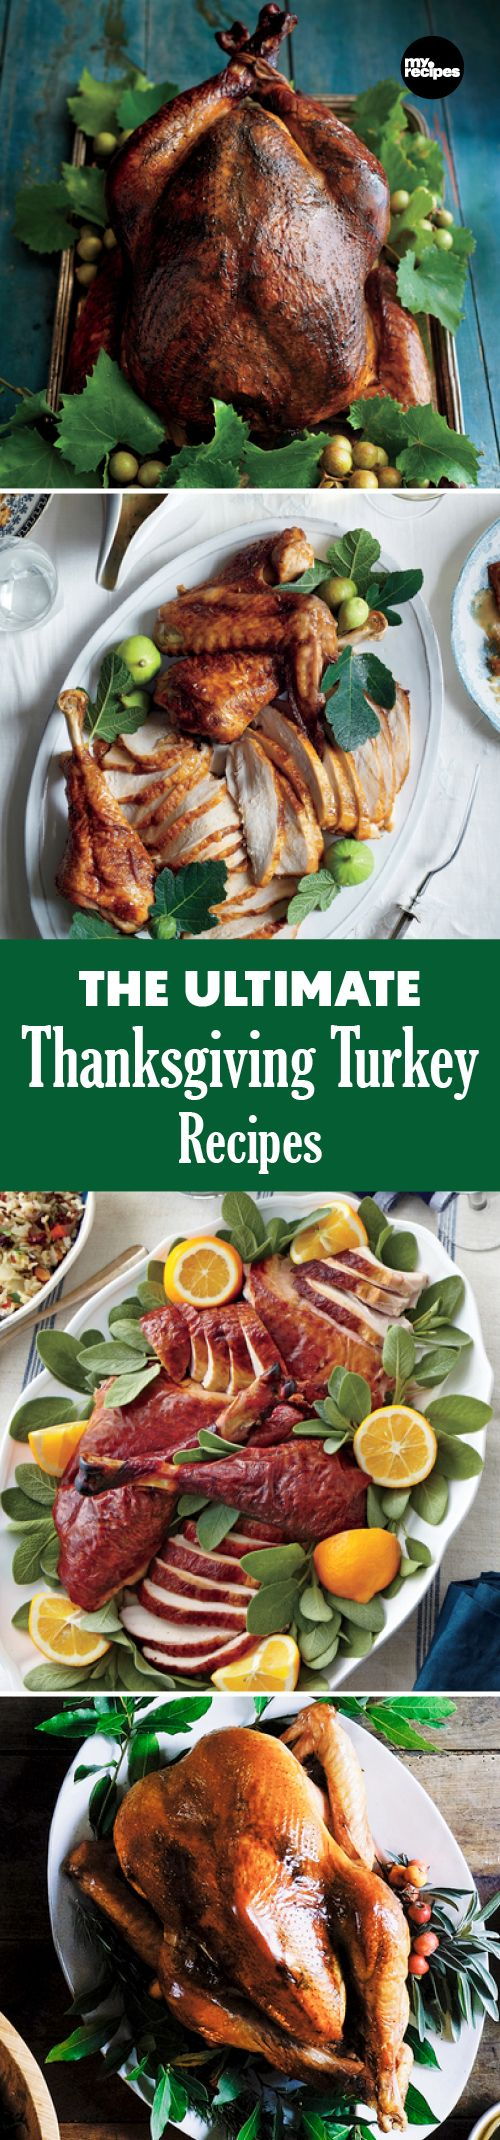 The Ultimate Thanksgiving Turkey Recipes | MyRecipes  However you like your turkey, make it the centerpiece of the table this year.